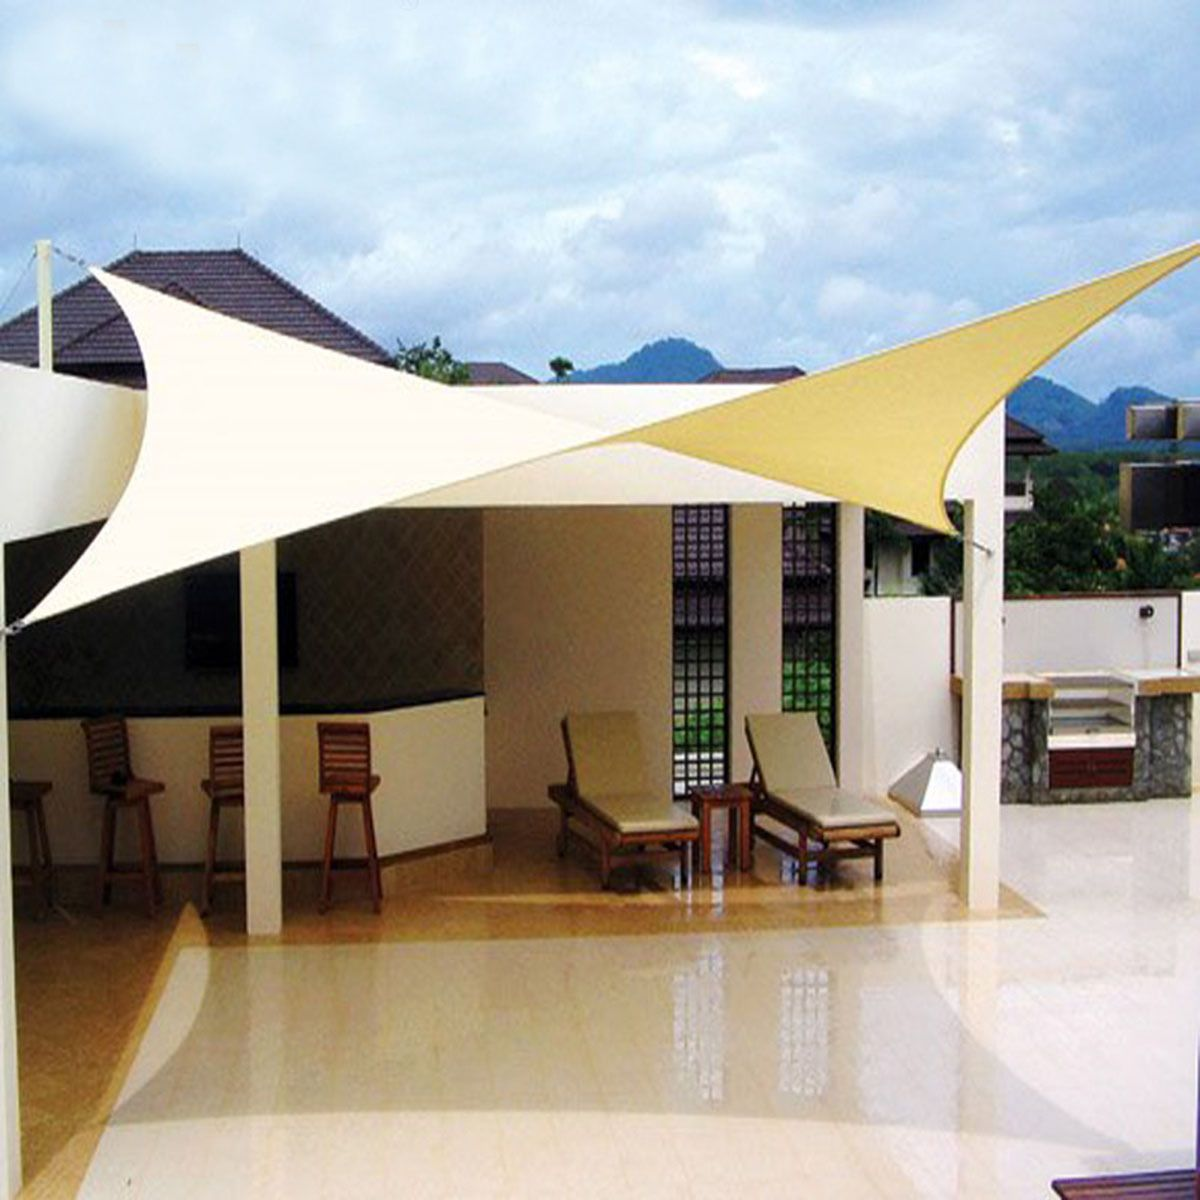 9.8u0027x13u0027 Rectangle Sun Shade Sail UV Top Cover Outdoor Canopy Patio ... & 9.8u0027x13u0027 Rectangle Sun Shade Sail UV Top Cover Outdoor Canopy ...